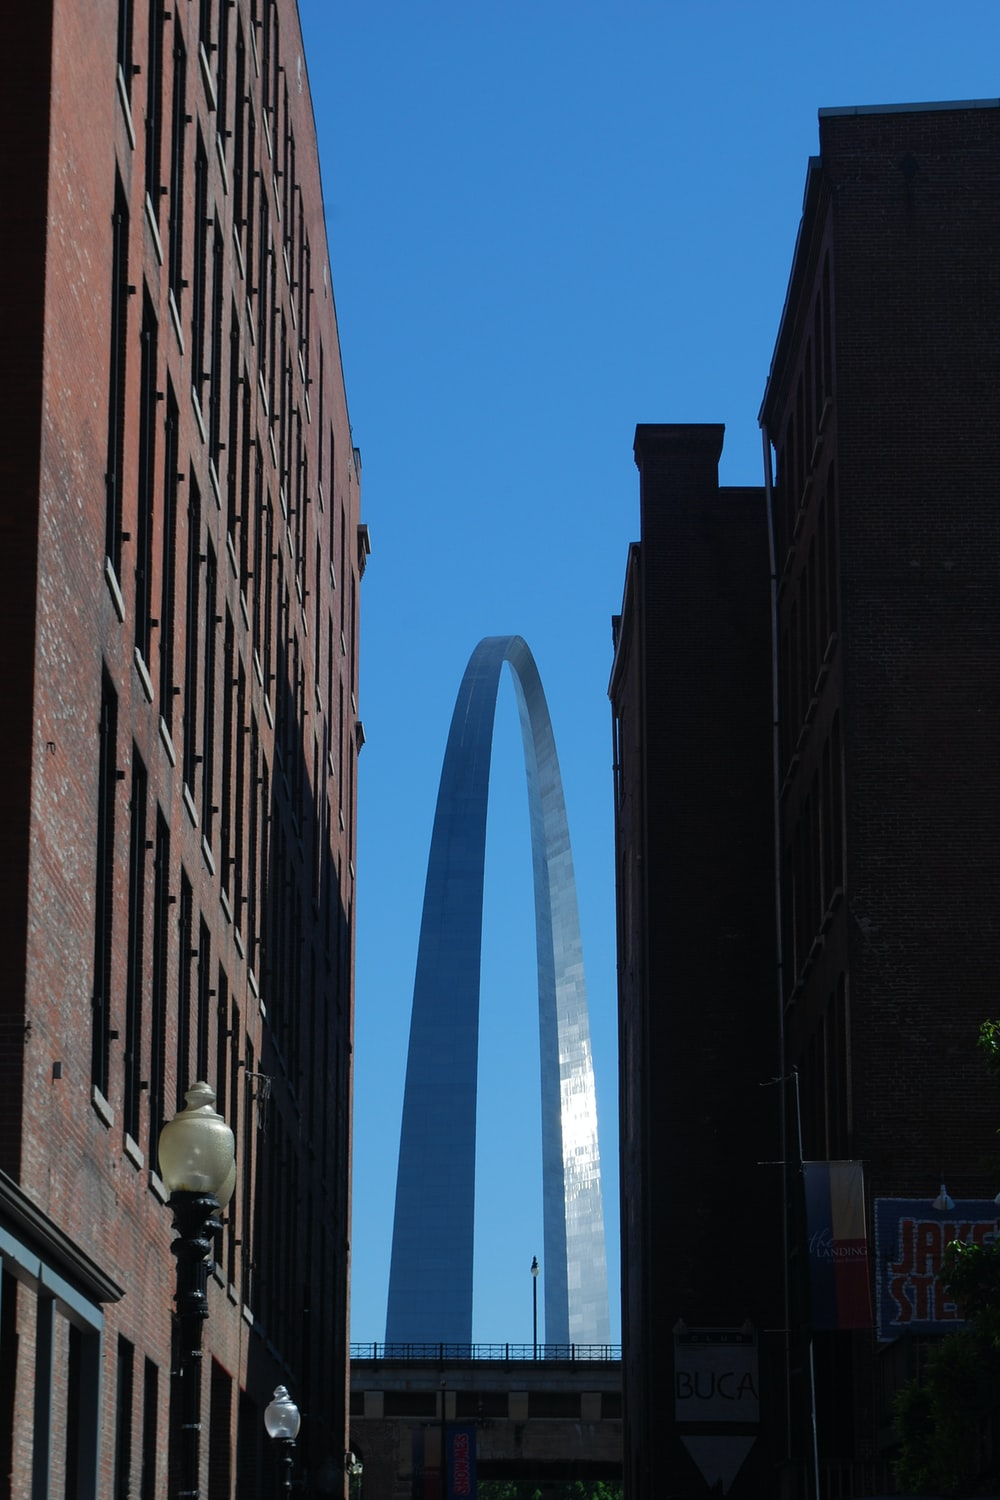 St Louis Pictures Download Free Images On Unsplash